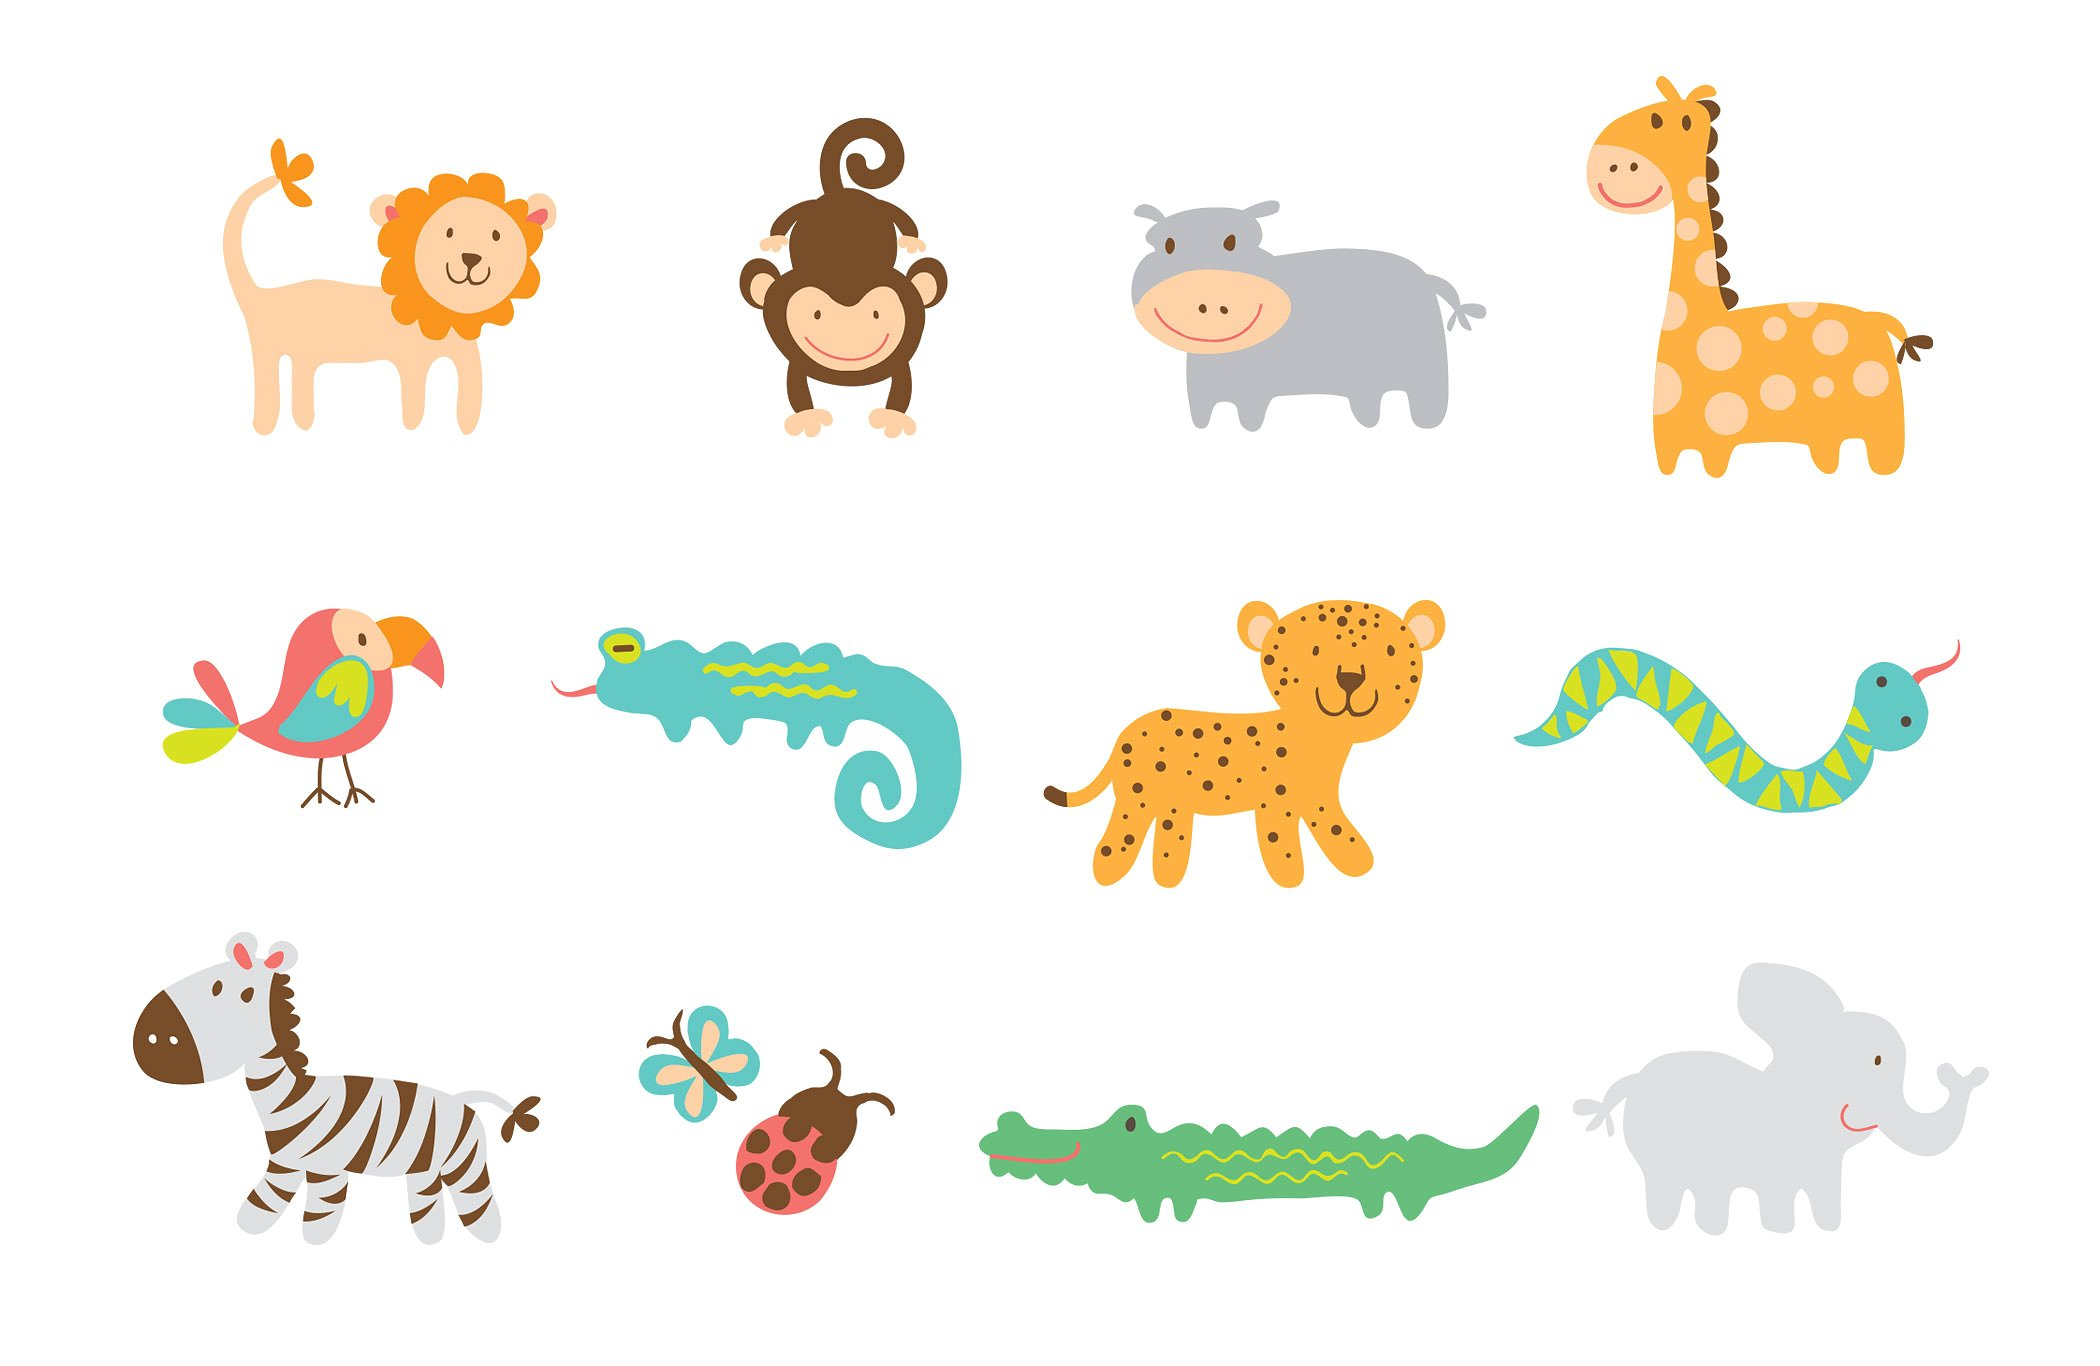 Safari clipart wild safari. Vector animal graphics graphic